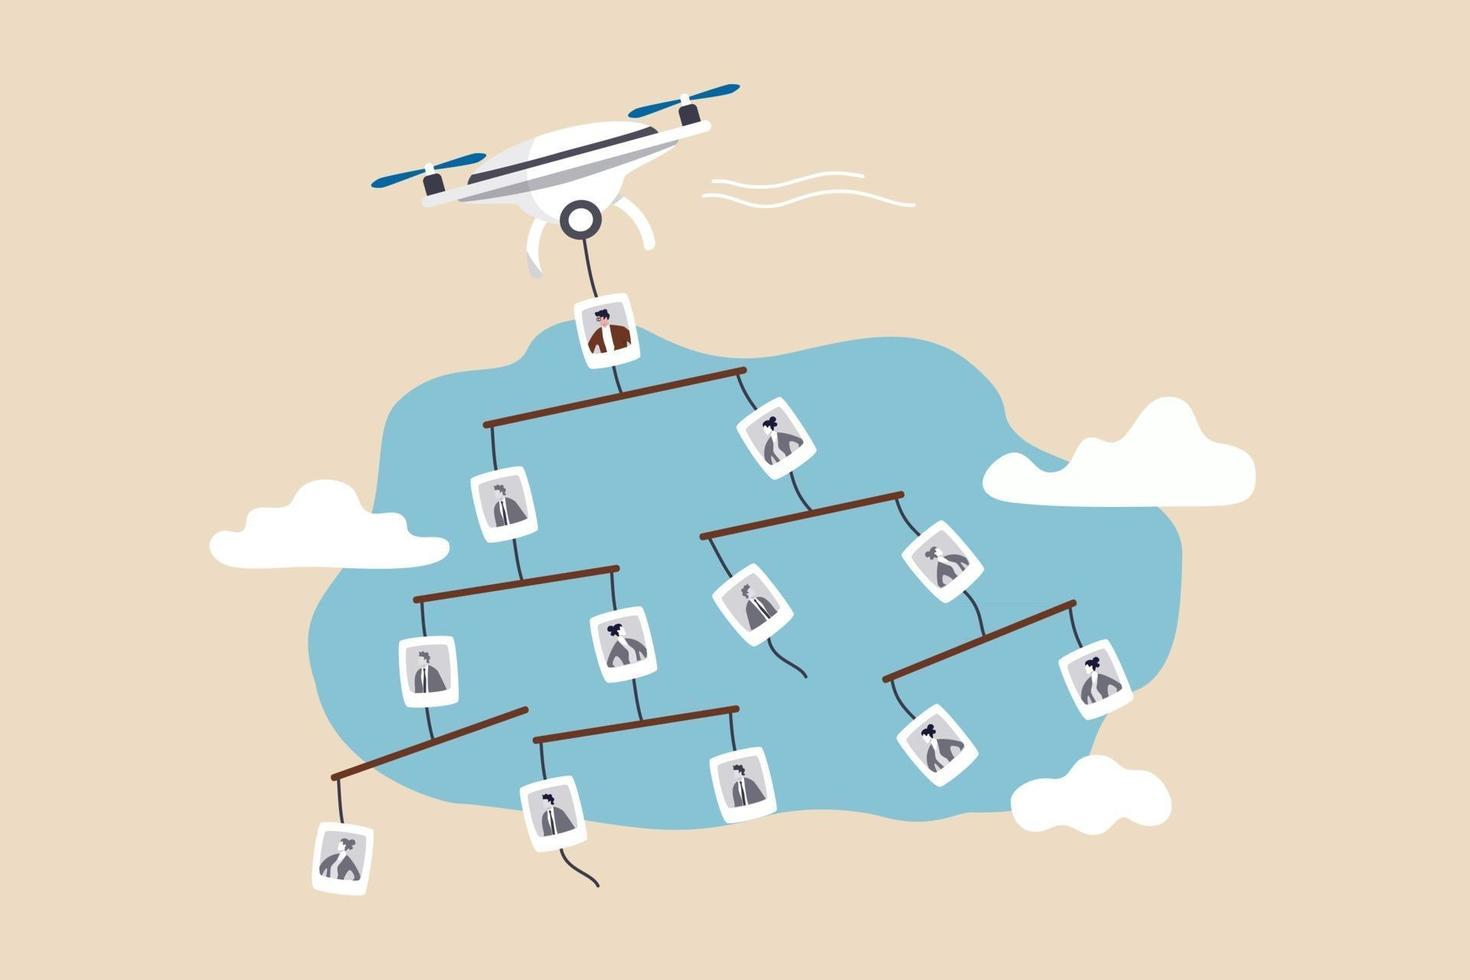 Management team or employees tree and hierarchy working level concept flying drone carrying mobile company org chart in the sky vector